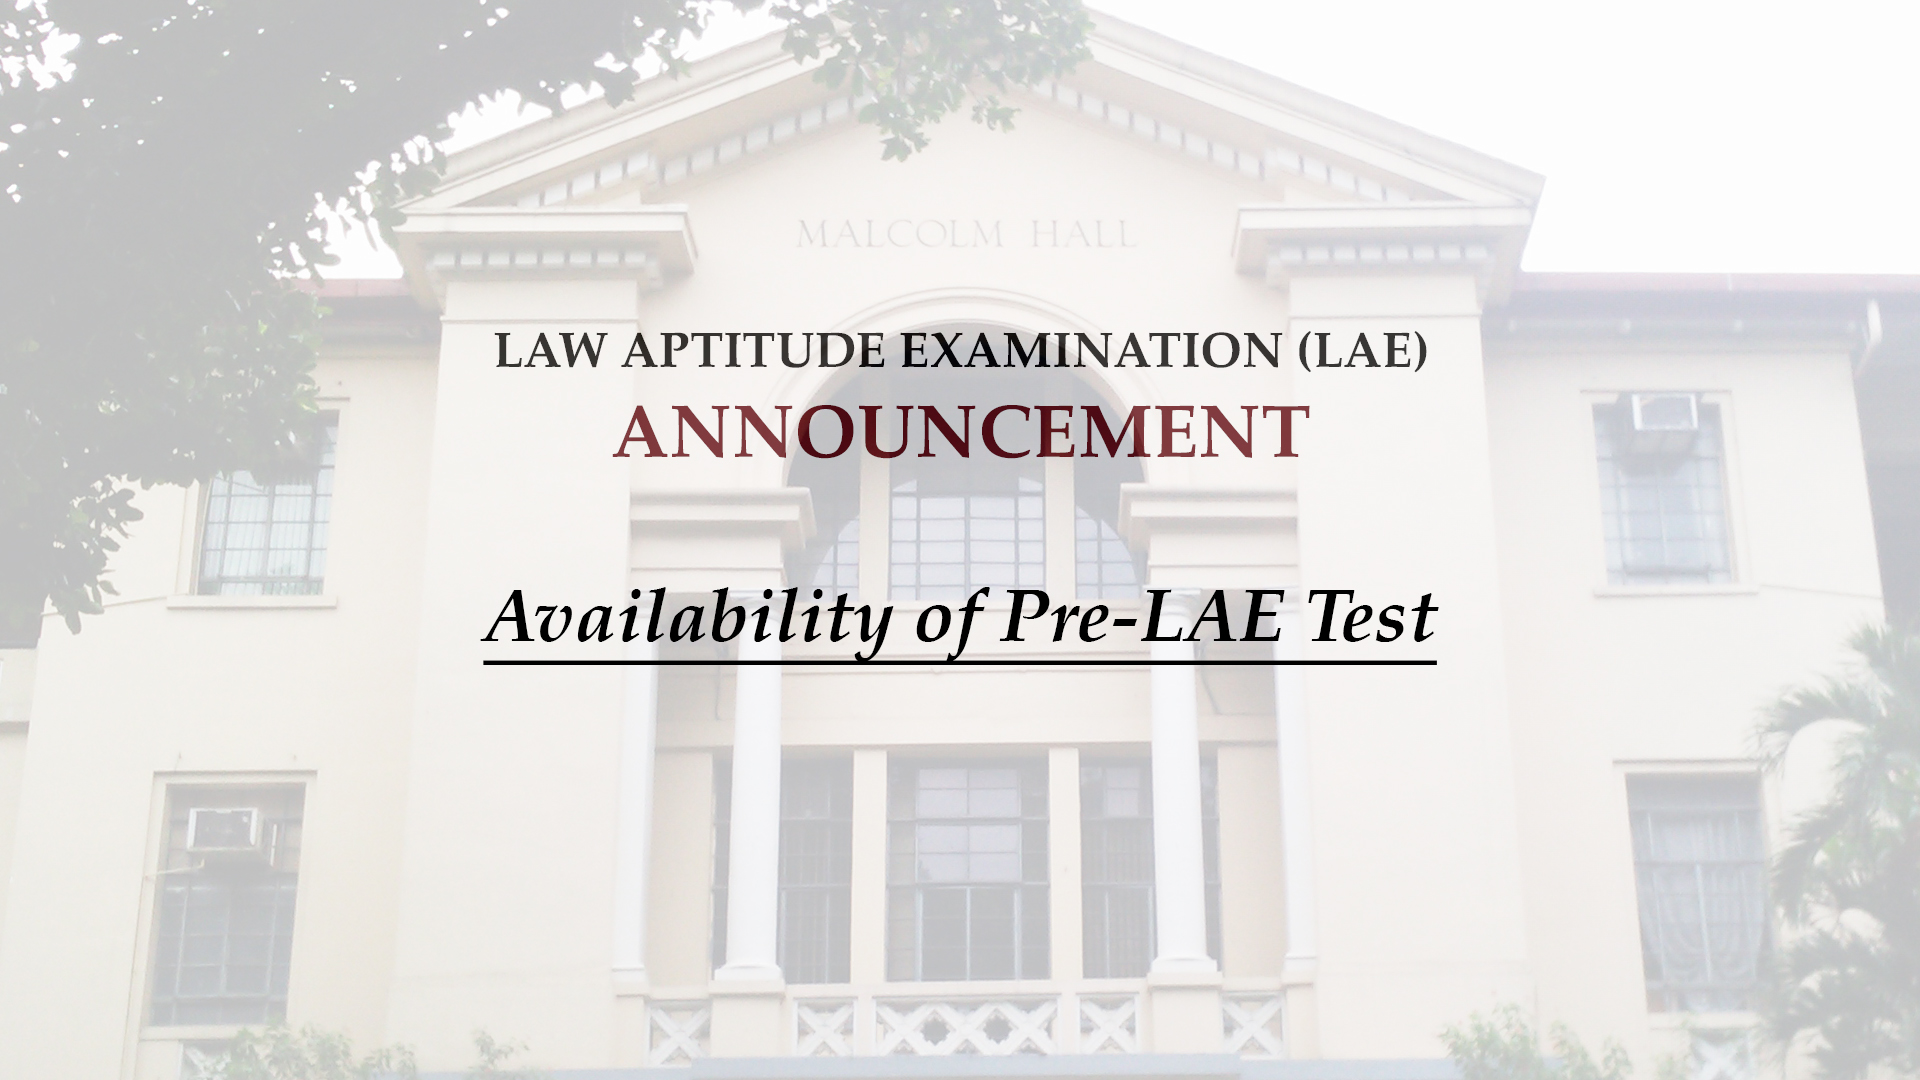 Availability of Pre-LAE Test